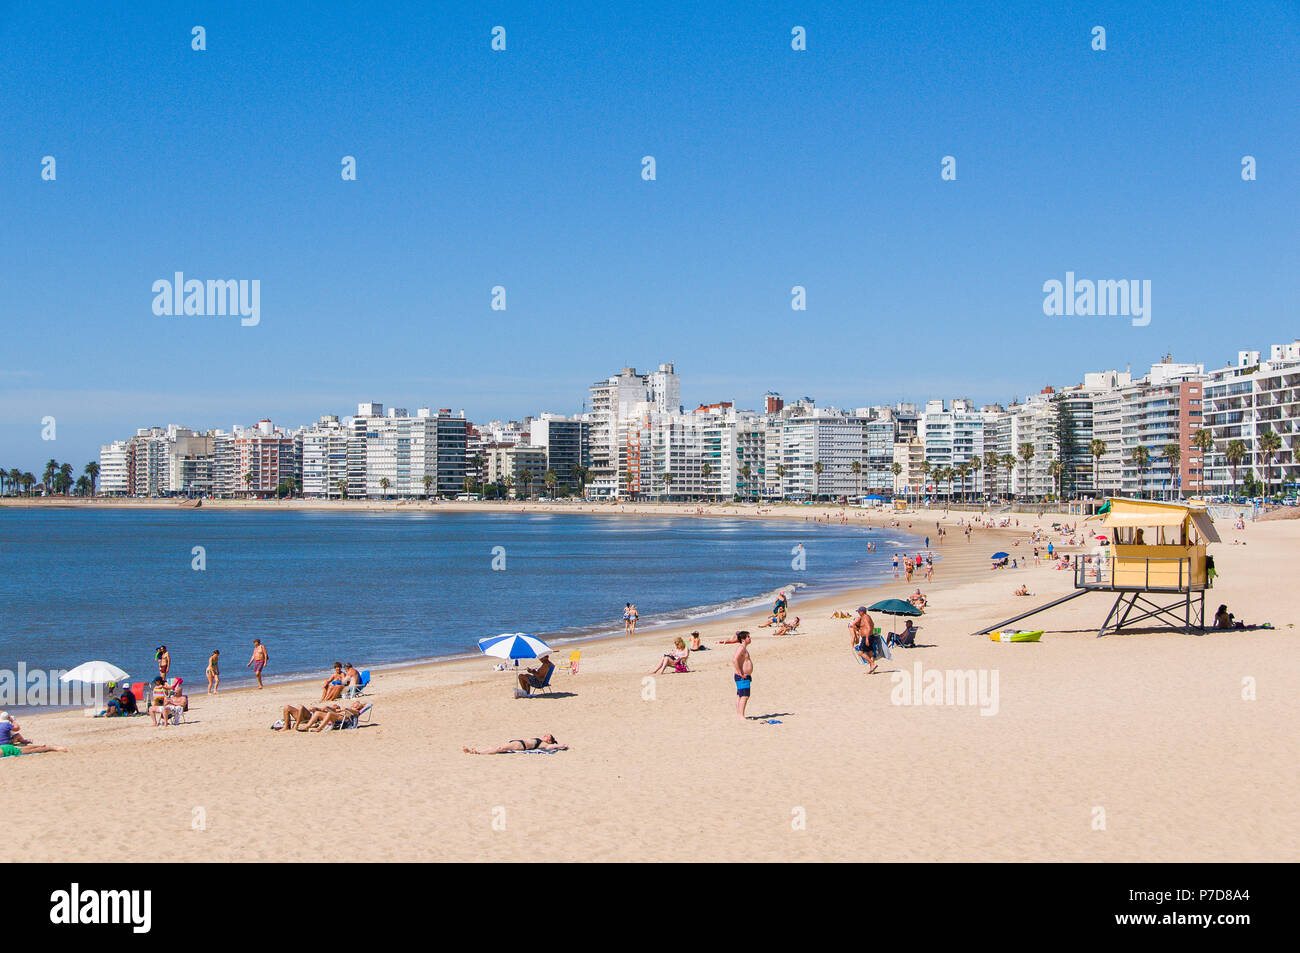 Swimmers at the city beach and skyscrapers in Montevideo, Uruguay - Stock Image